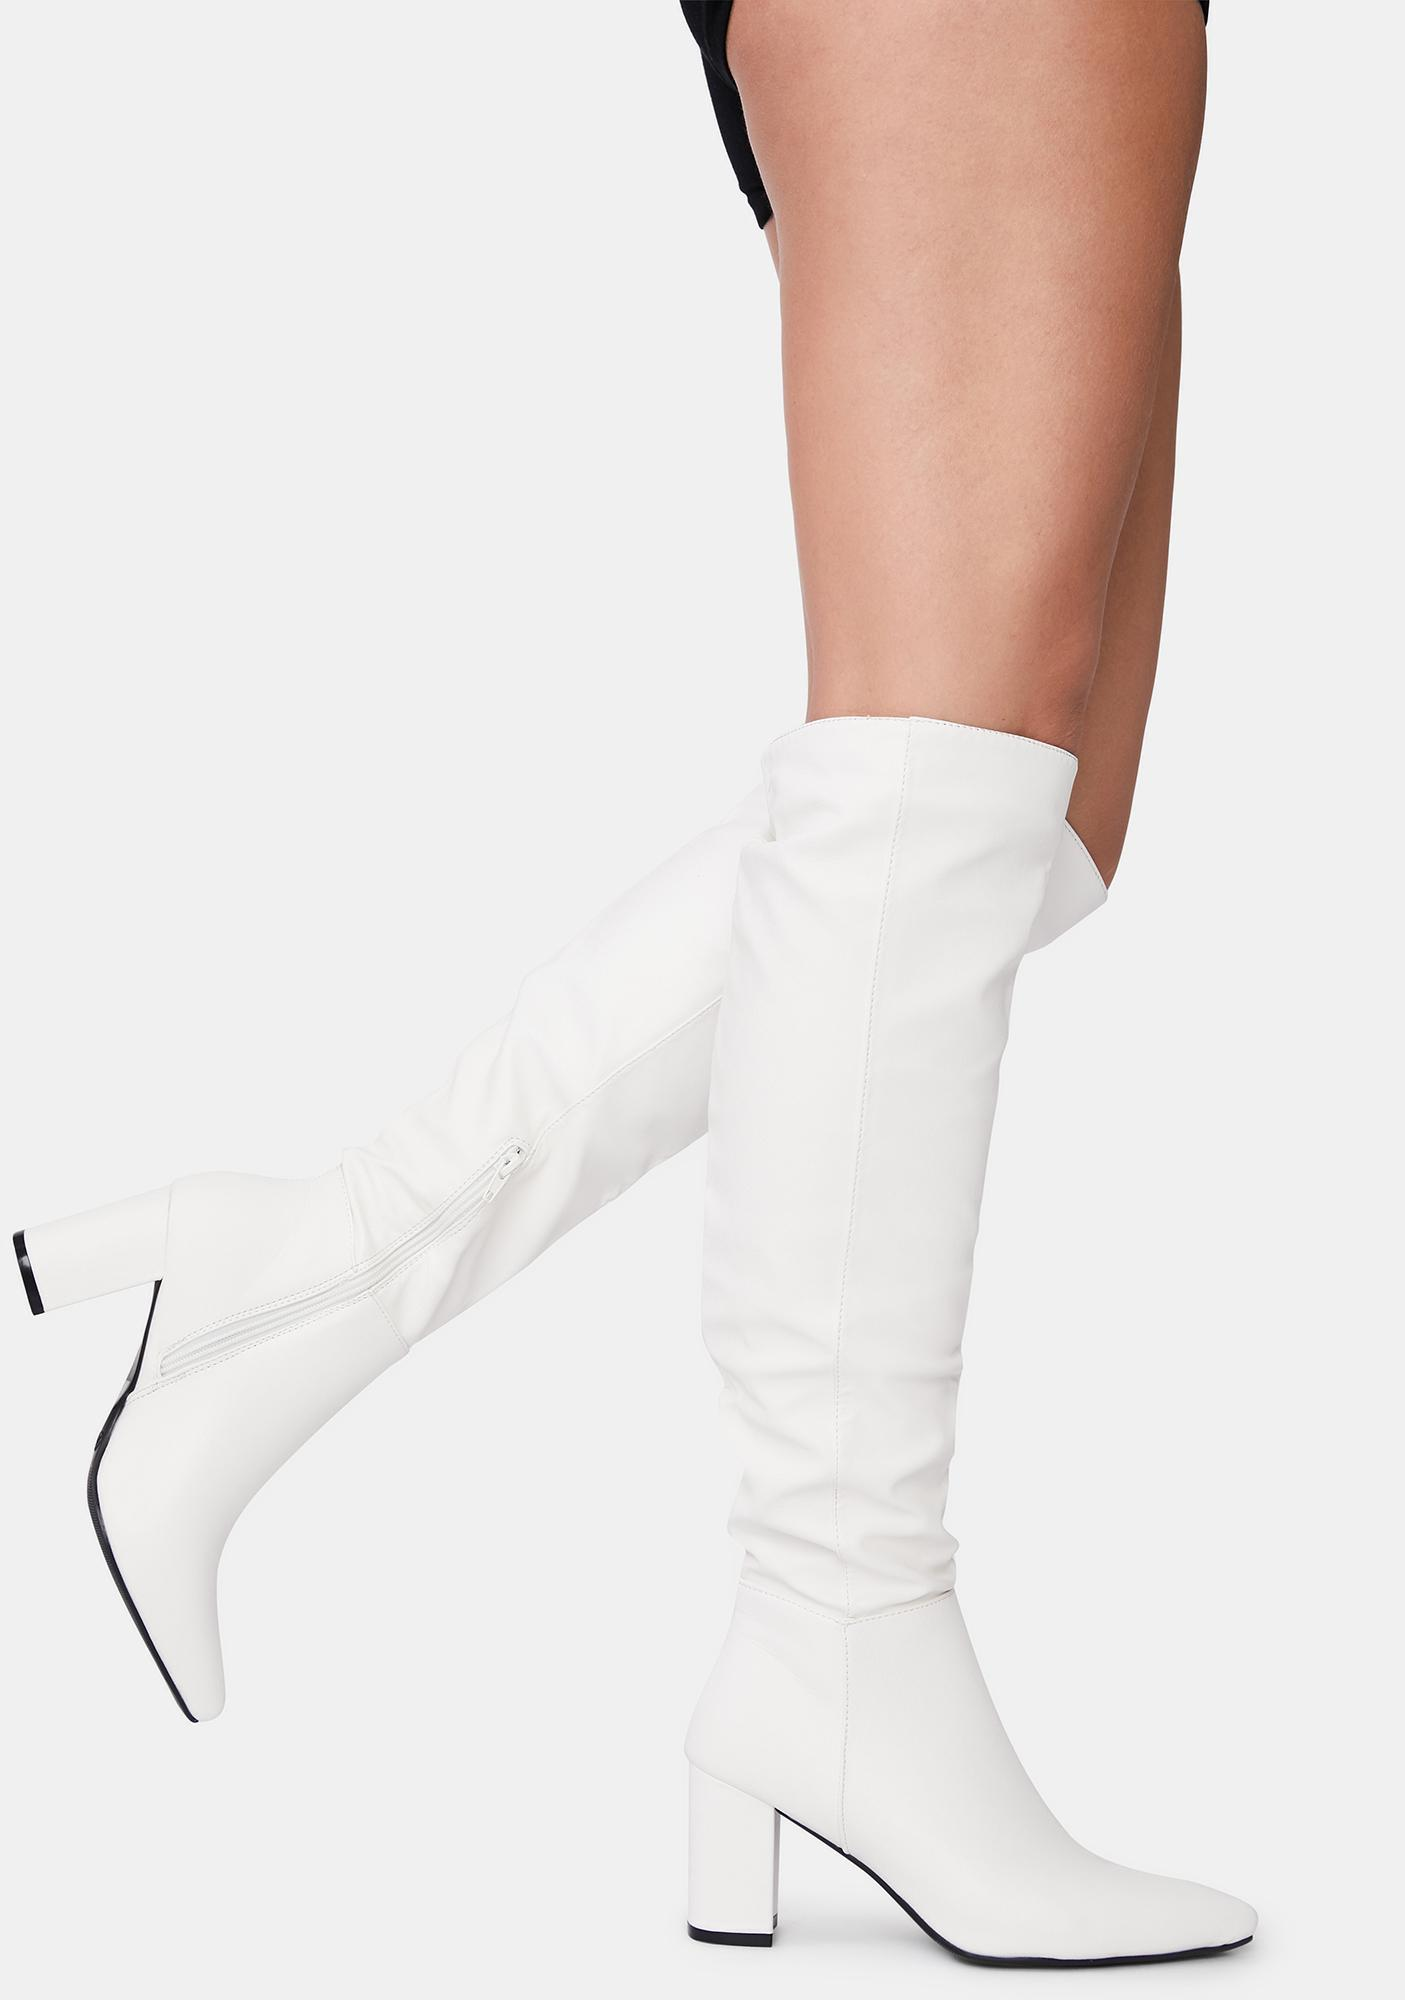 Halo Go Go With The Flow Knee High Boots